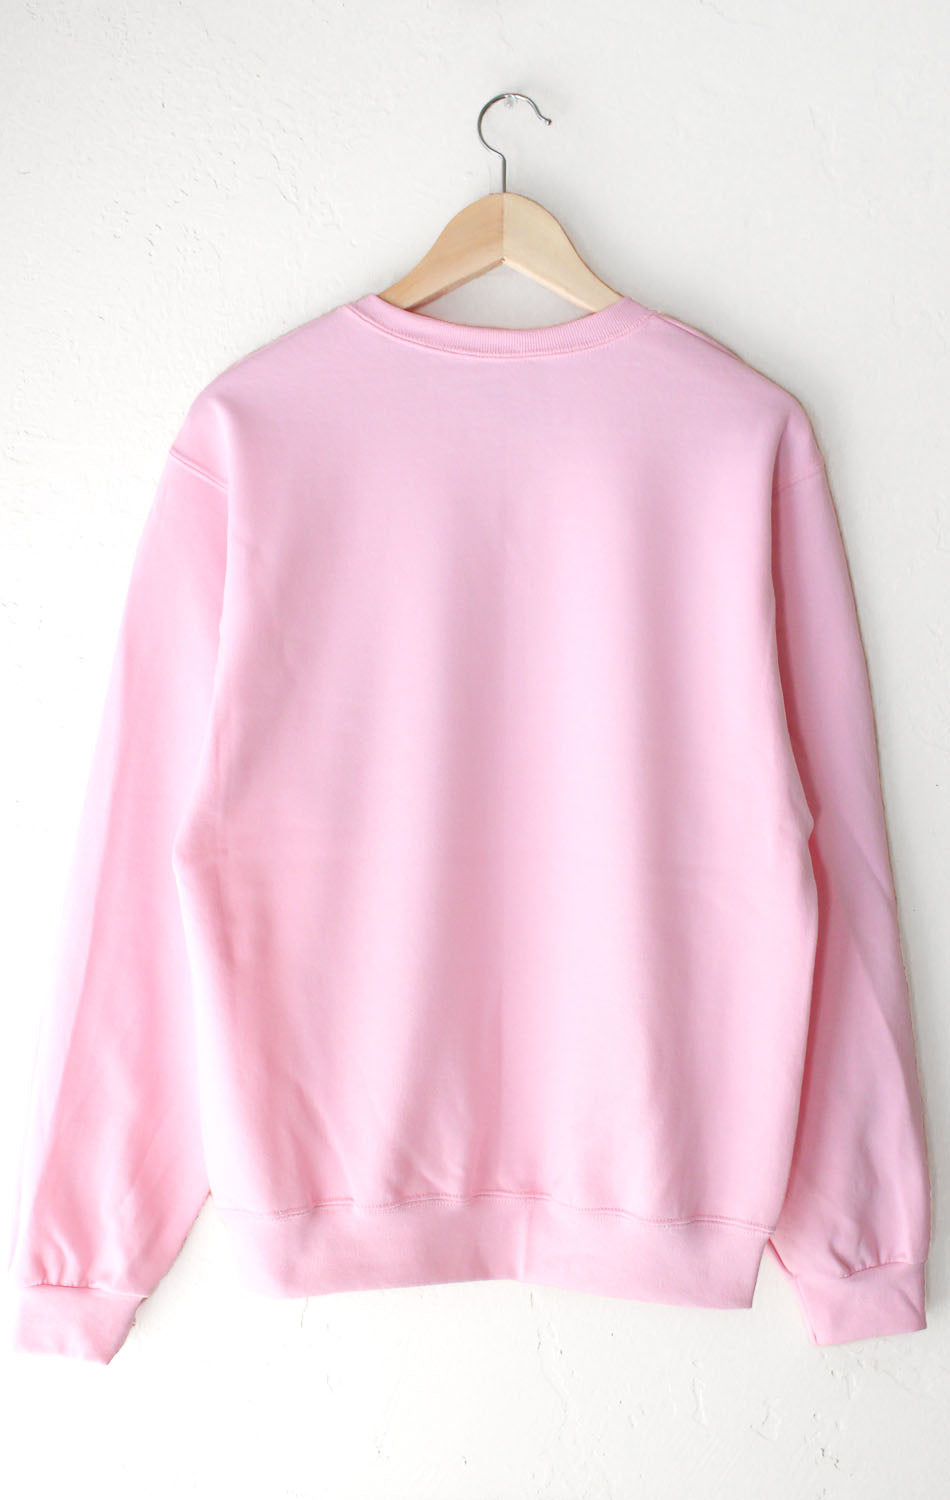 light sweater rhinestones and pink en woman shirts pinko sleeves long with tops extra sweatshirt applications